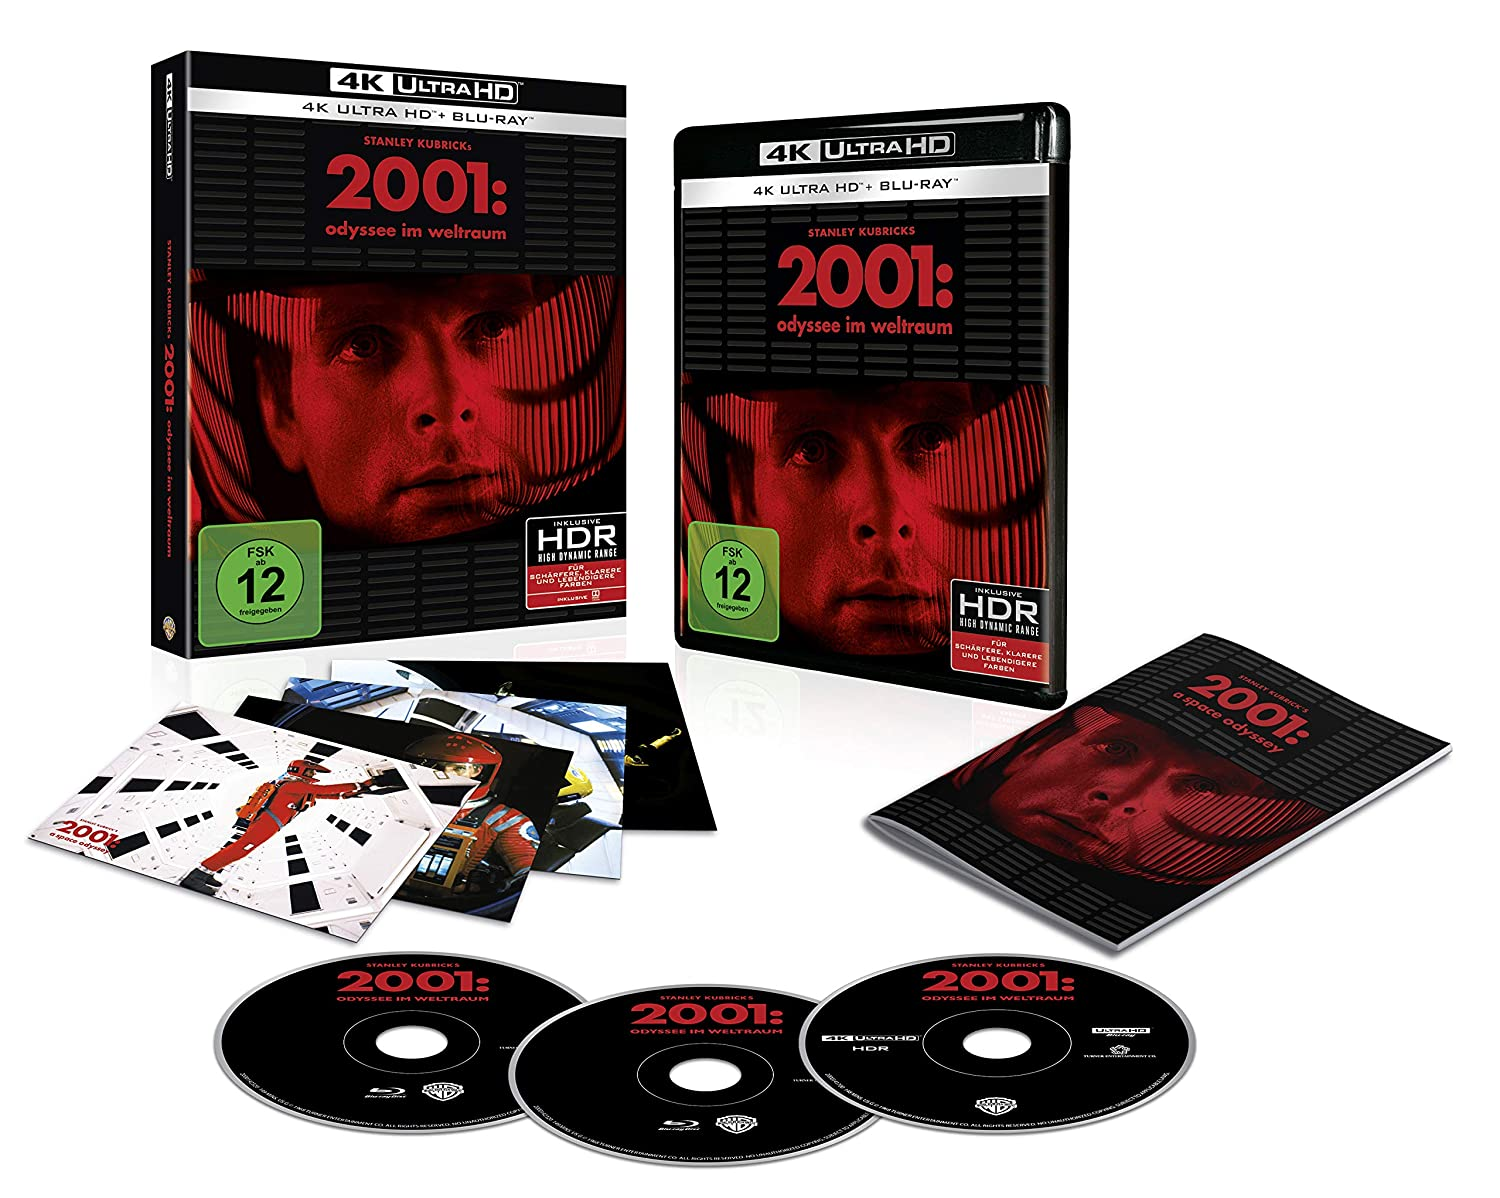 2001: Odyssee im Weltraum (Limited Edition) - 4K Ultra HD [UHD + Blu-ray Disc]